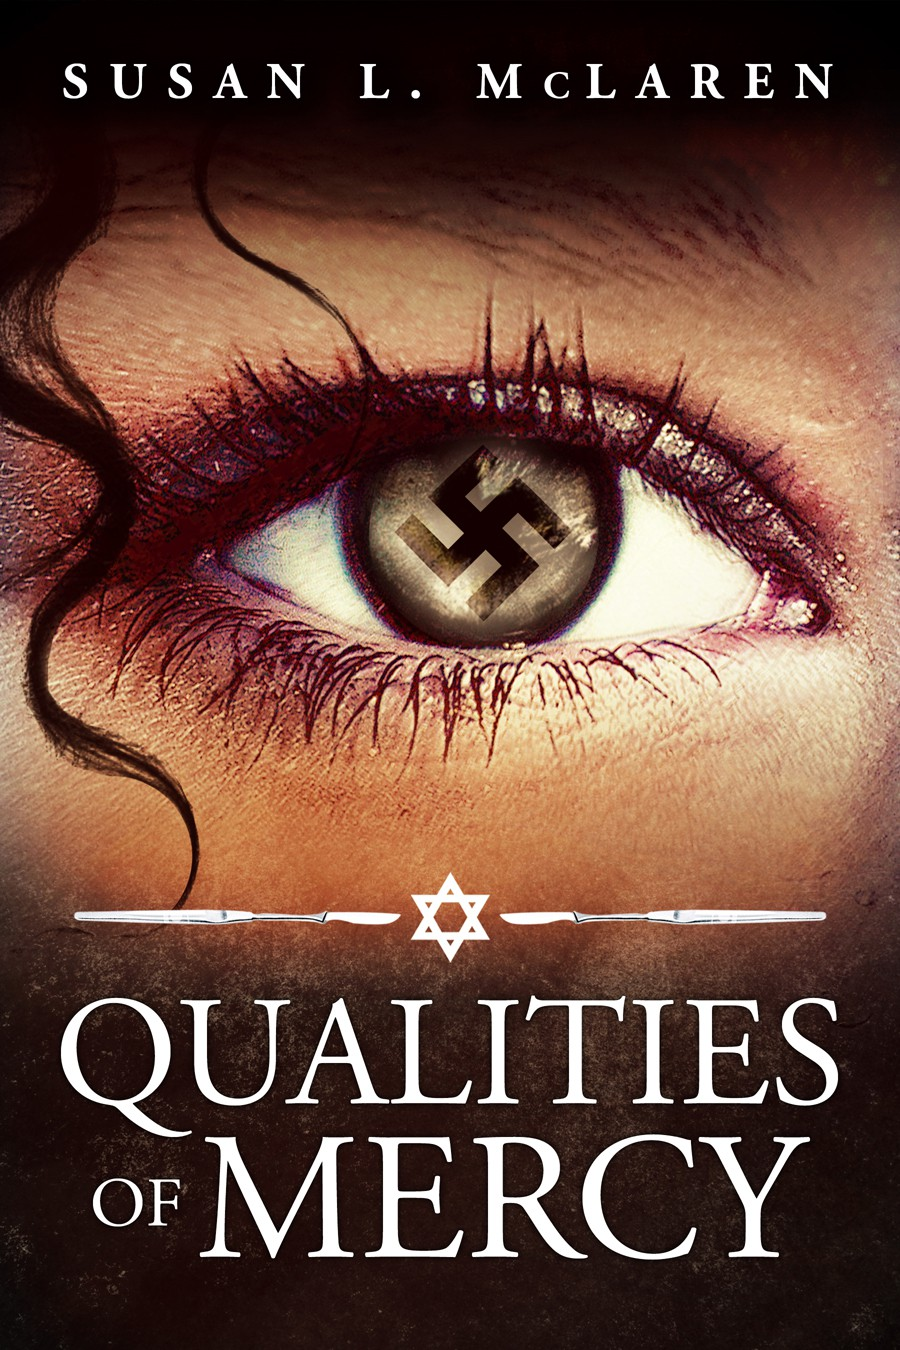 Design a striking ebook cover for historical fiction thriller set in Nazi Berlin, 1938.